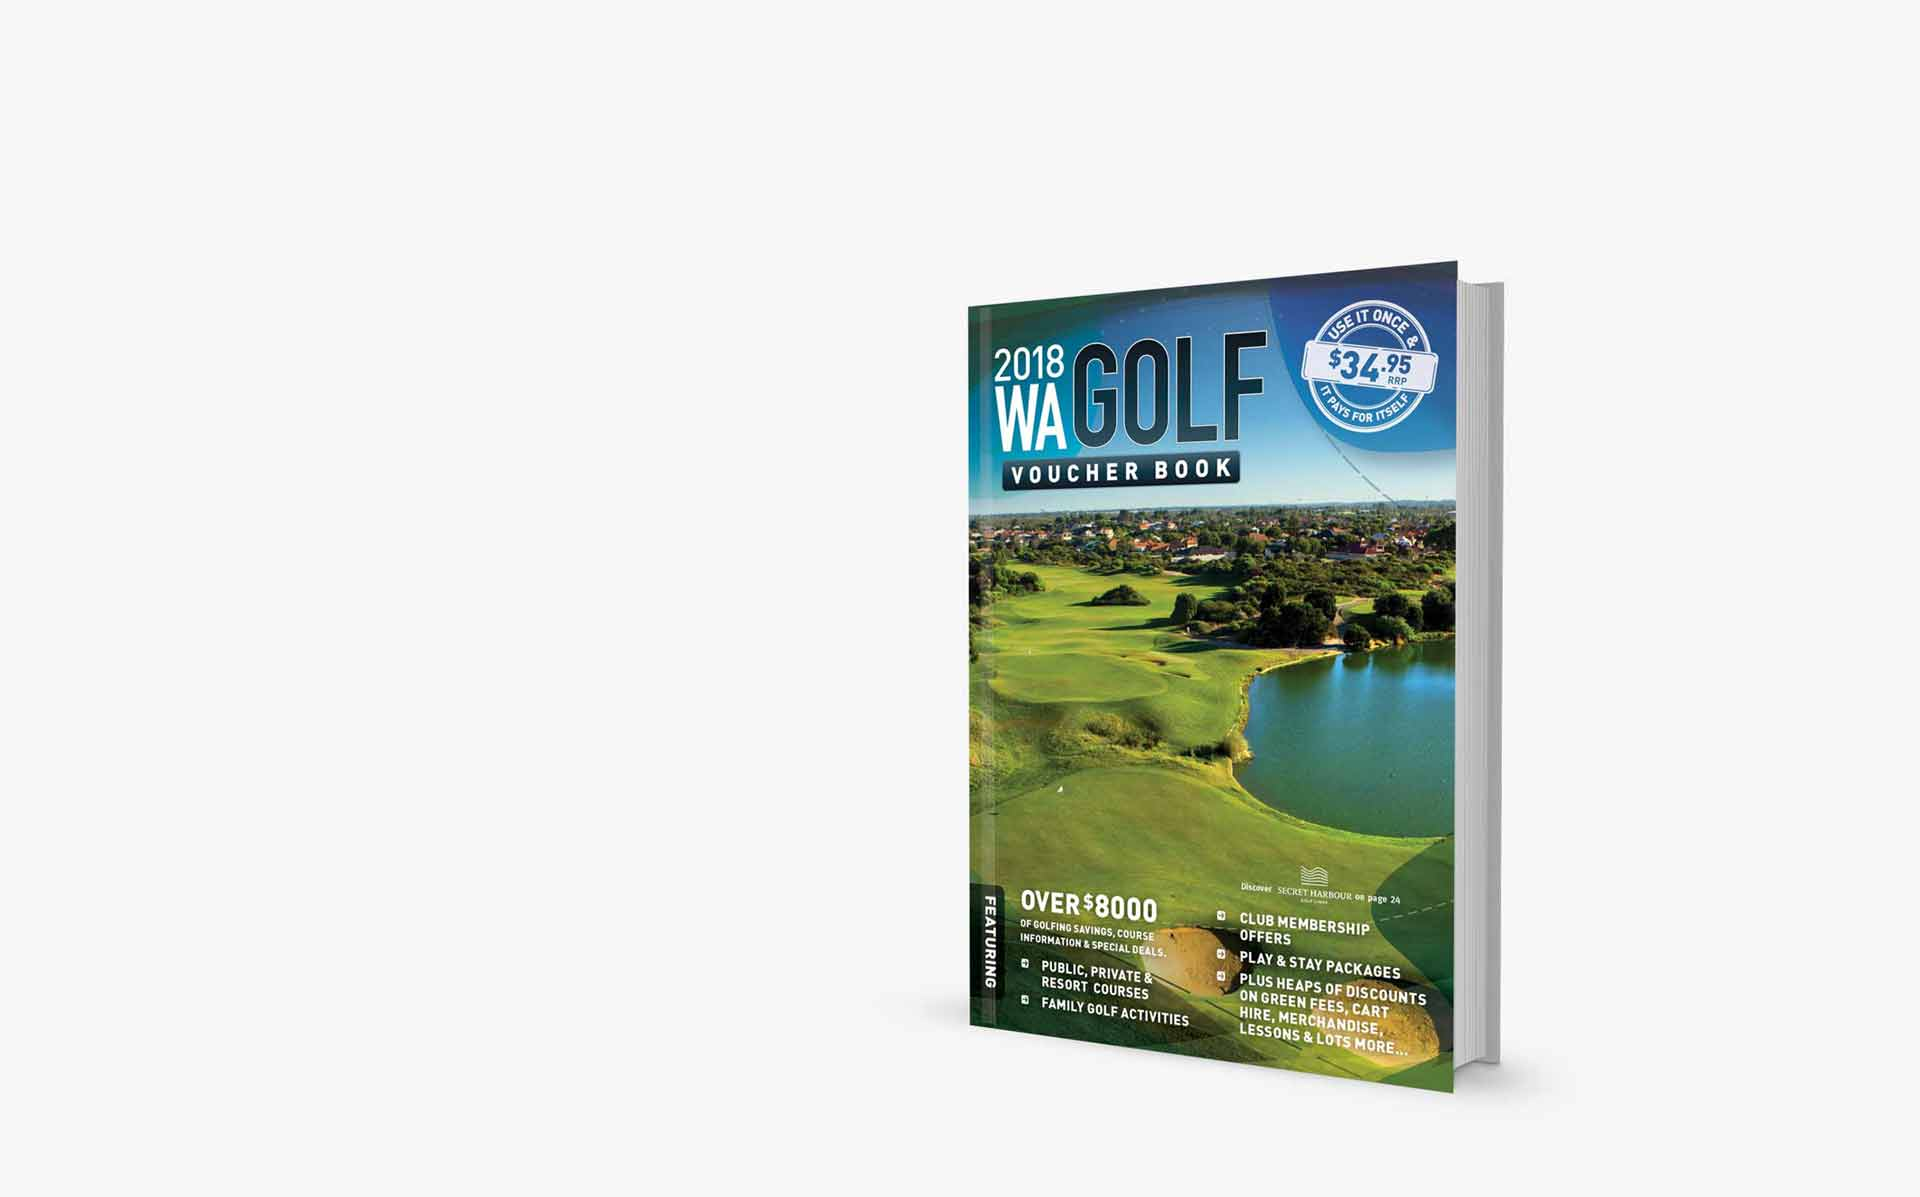 WA Golf <br>Voucher Book